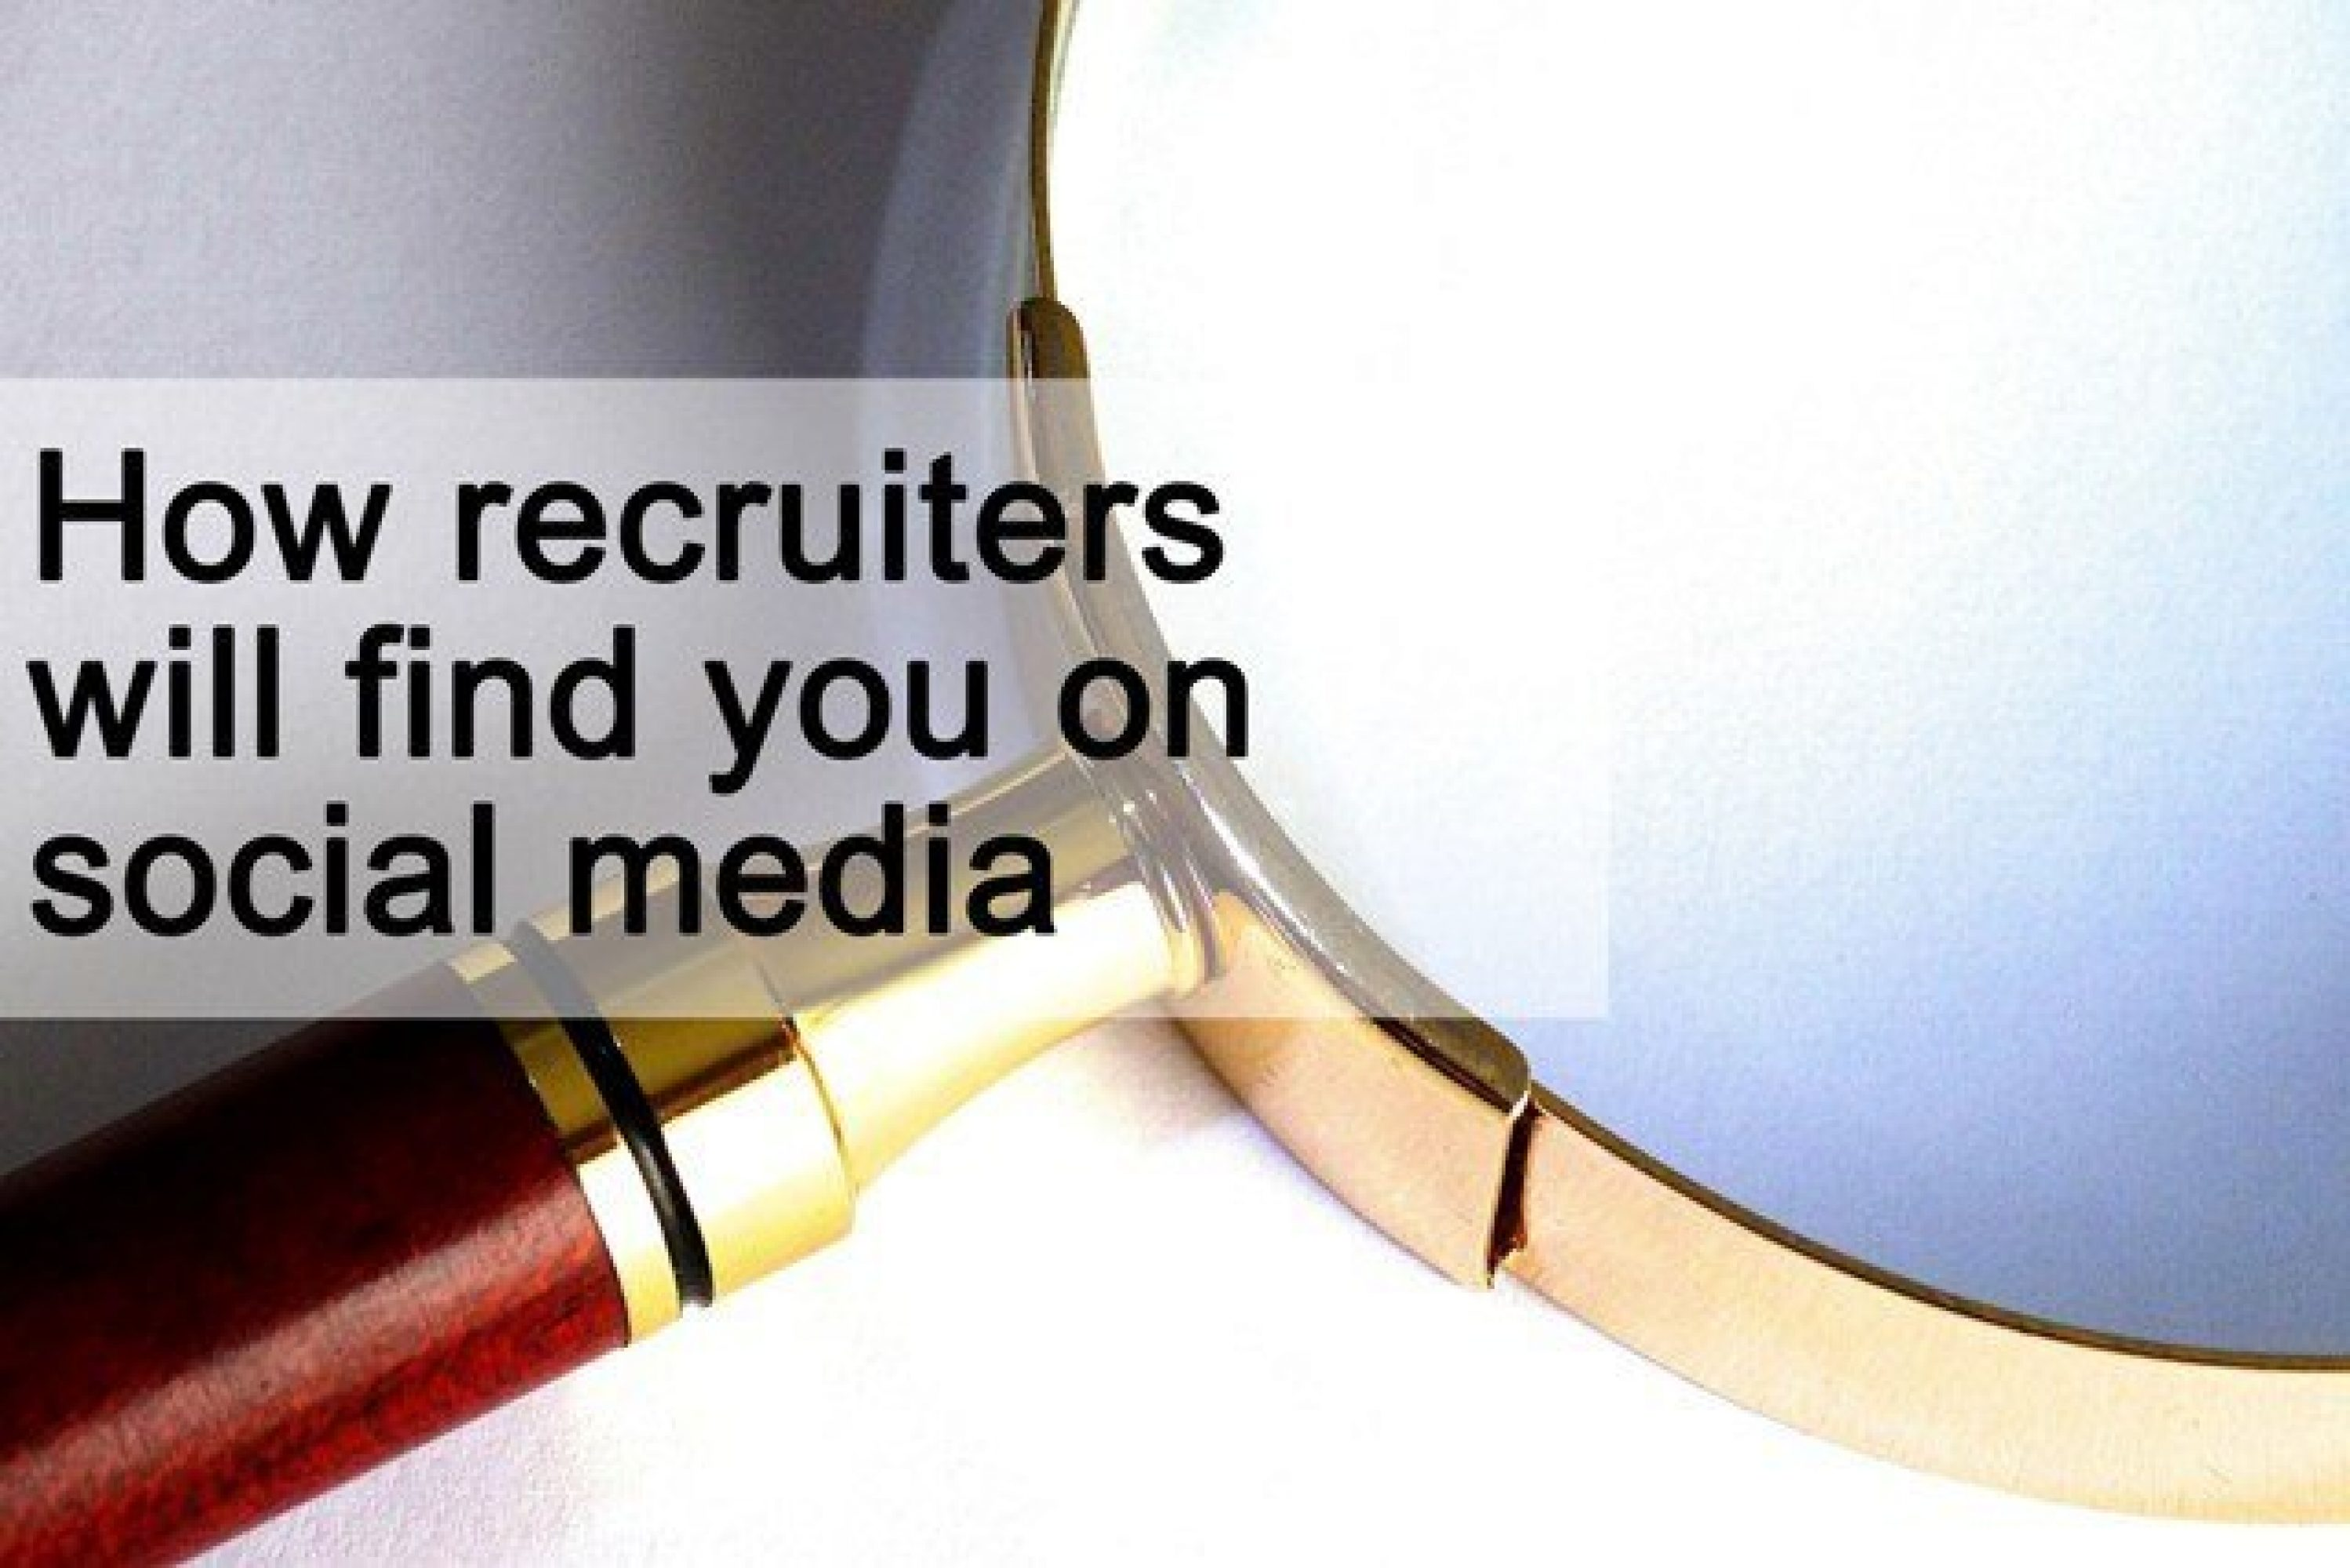 How recruiters will find you on social media